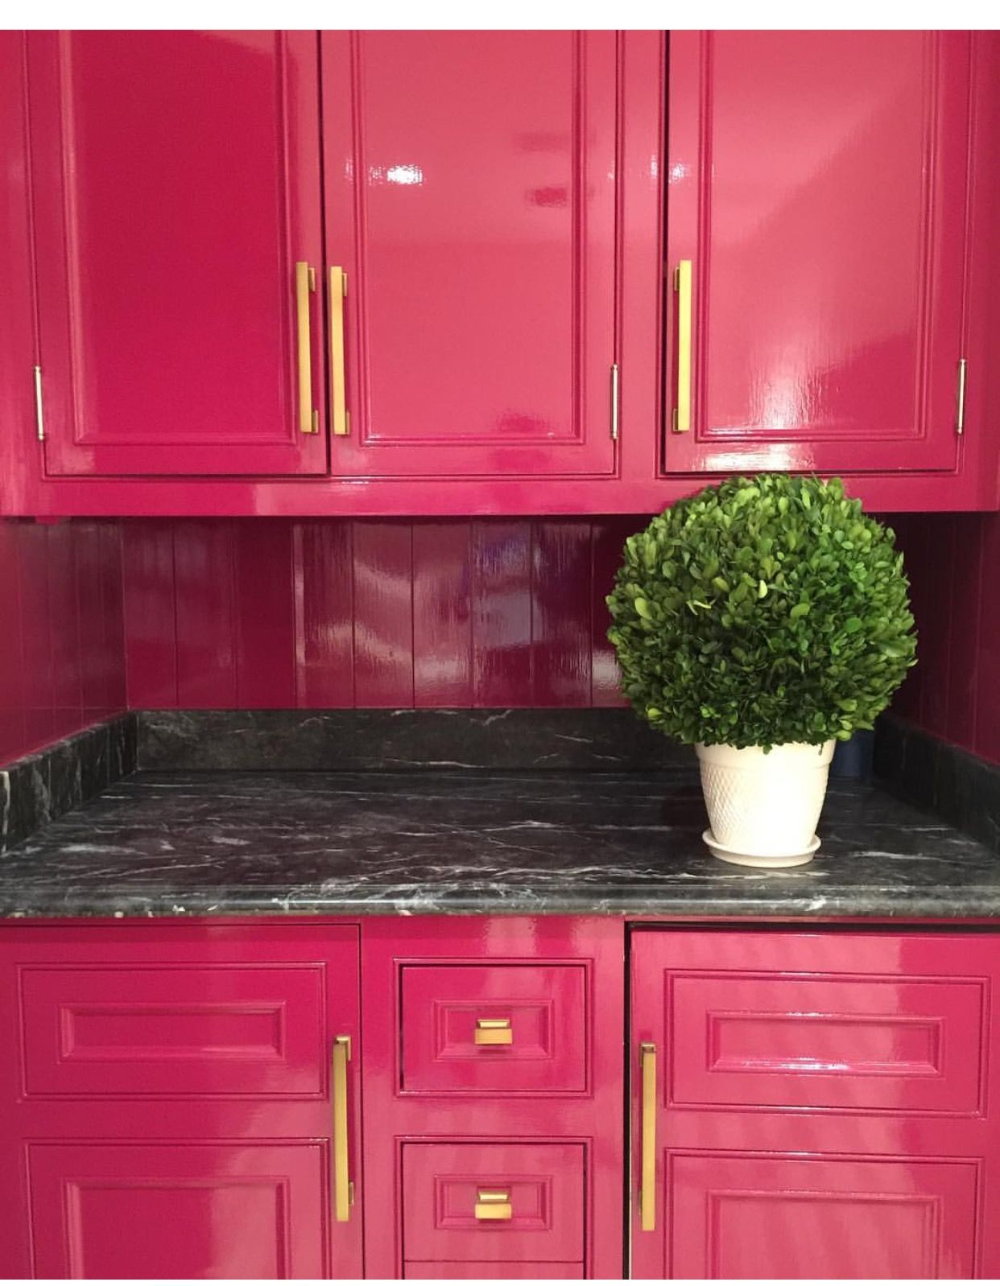 Pink And Black Kitchen Google Search In 2020 Pink Kitchen Decor Hot Pink Kitchen Pink Kitchen Cabinets